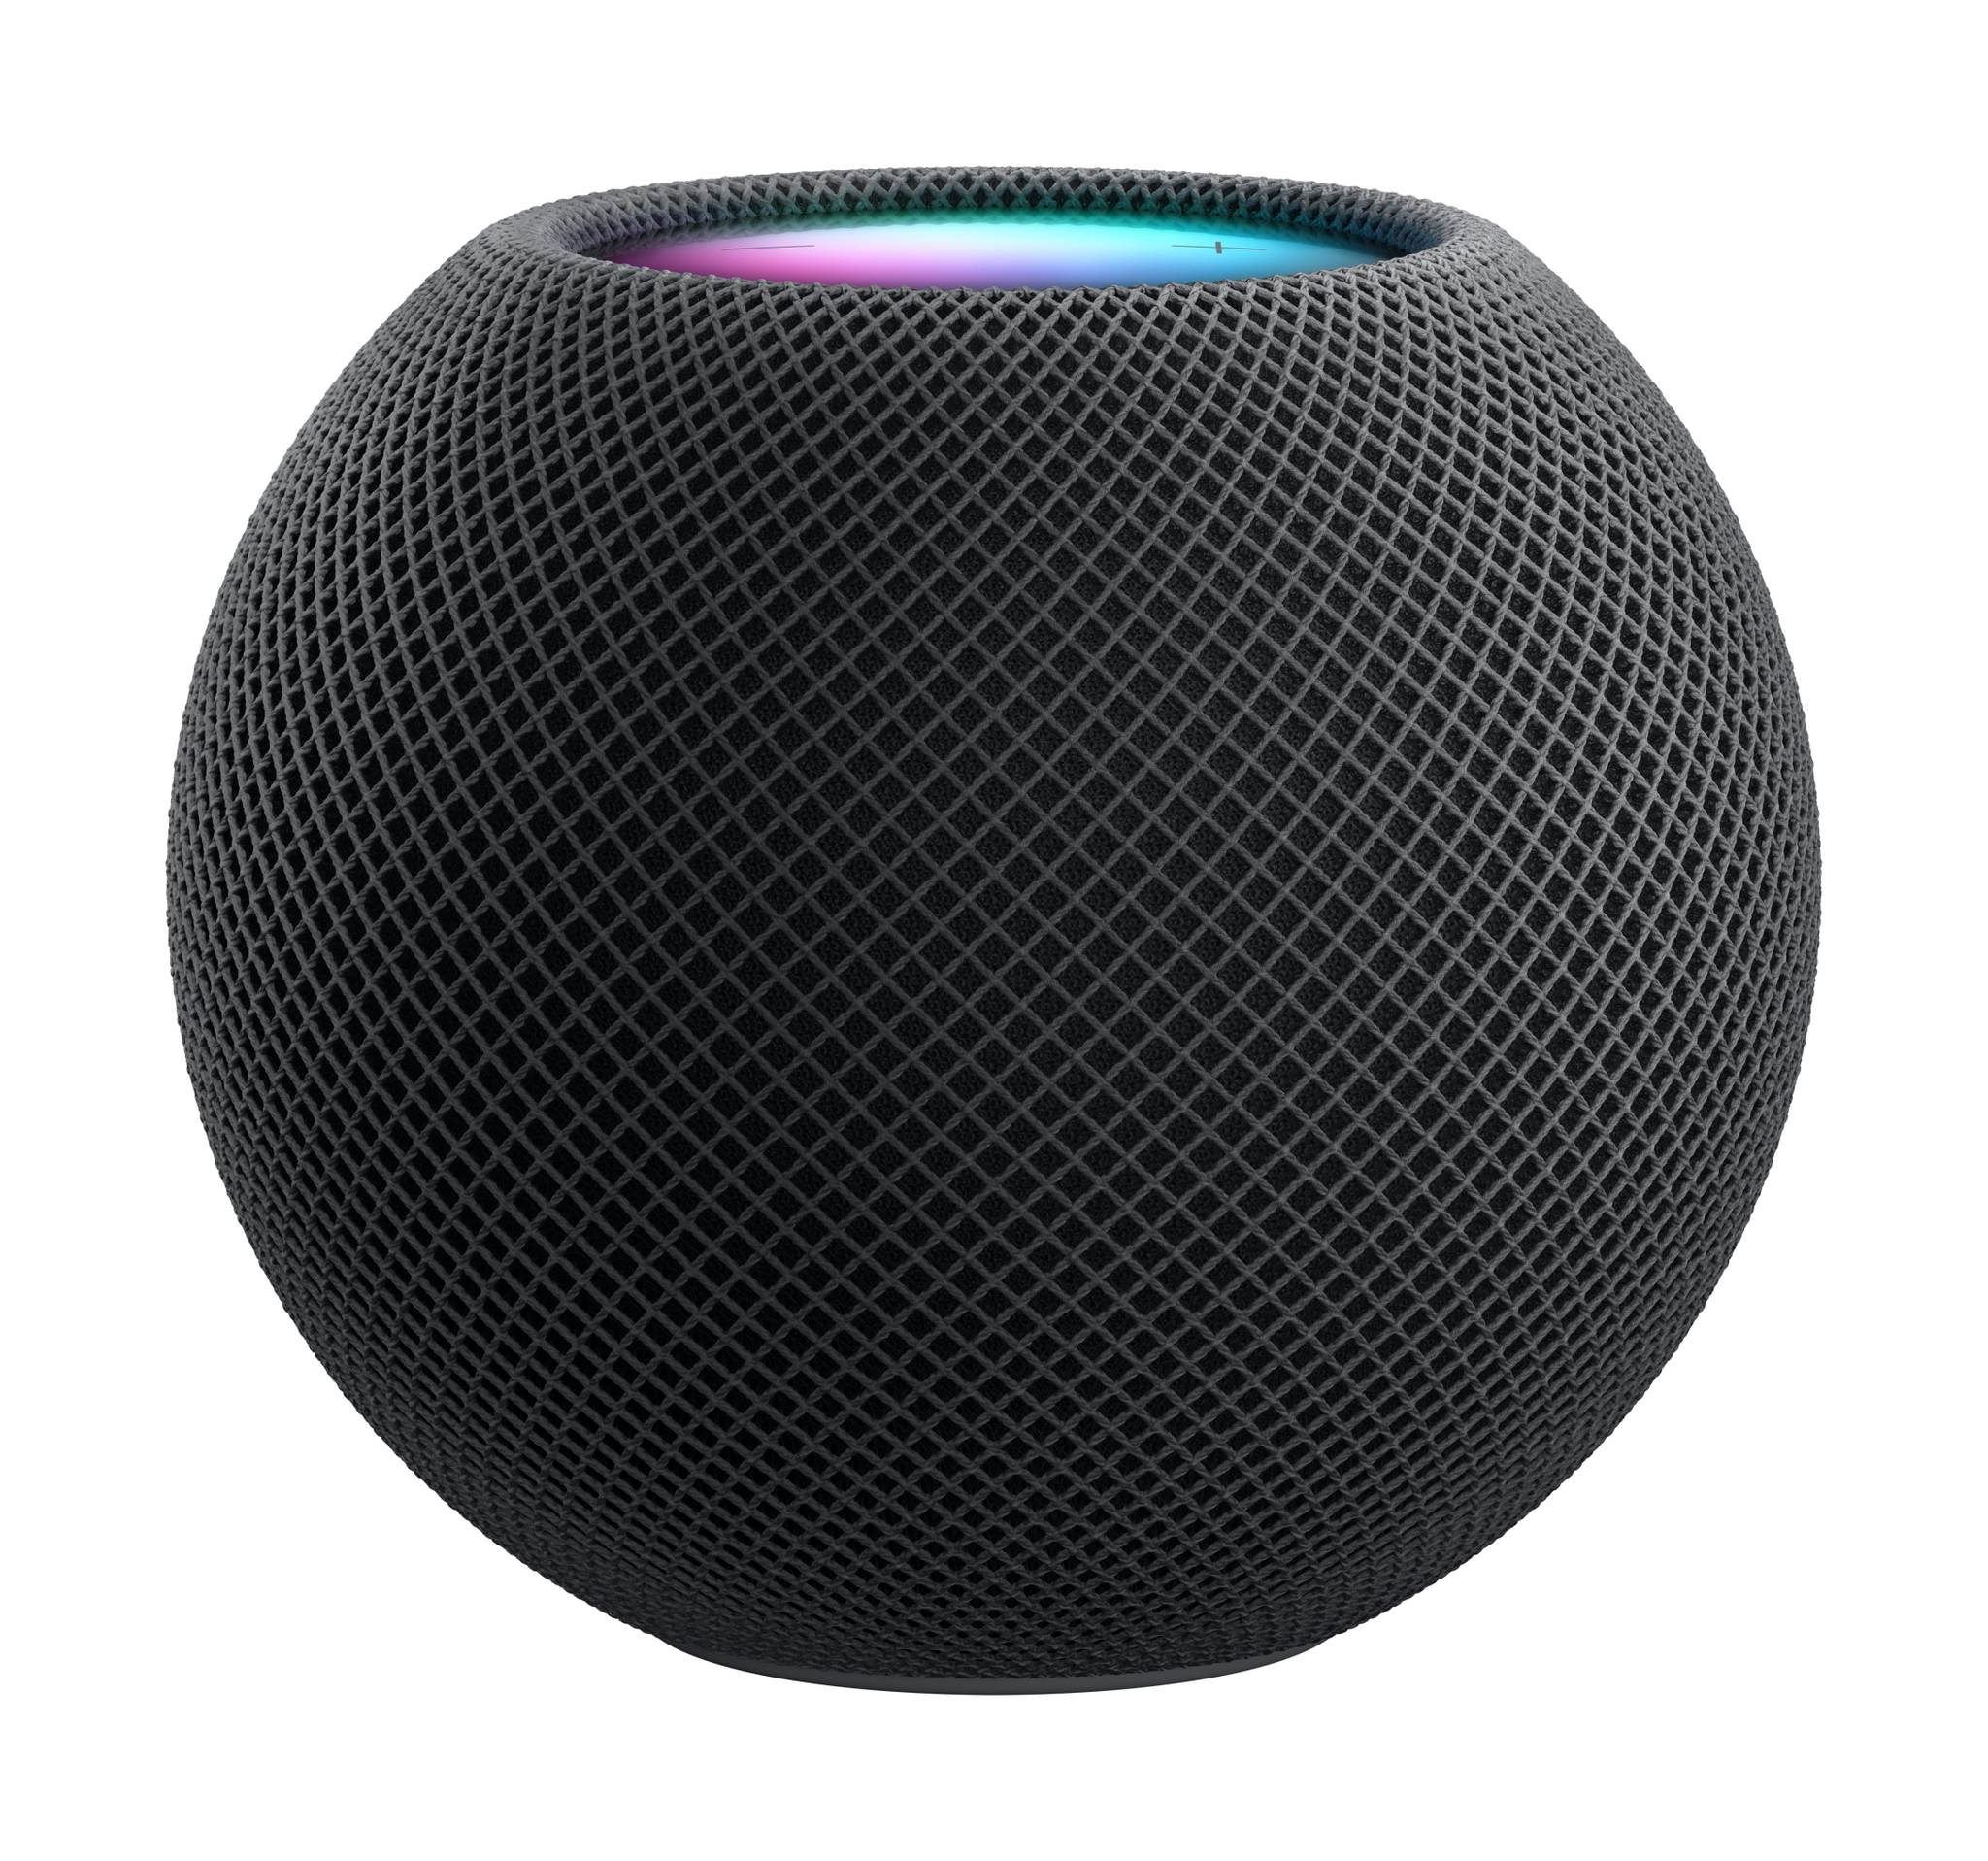 Apple HomePod mini - Space Gray (2020)